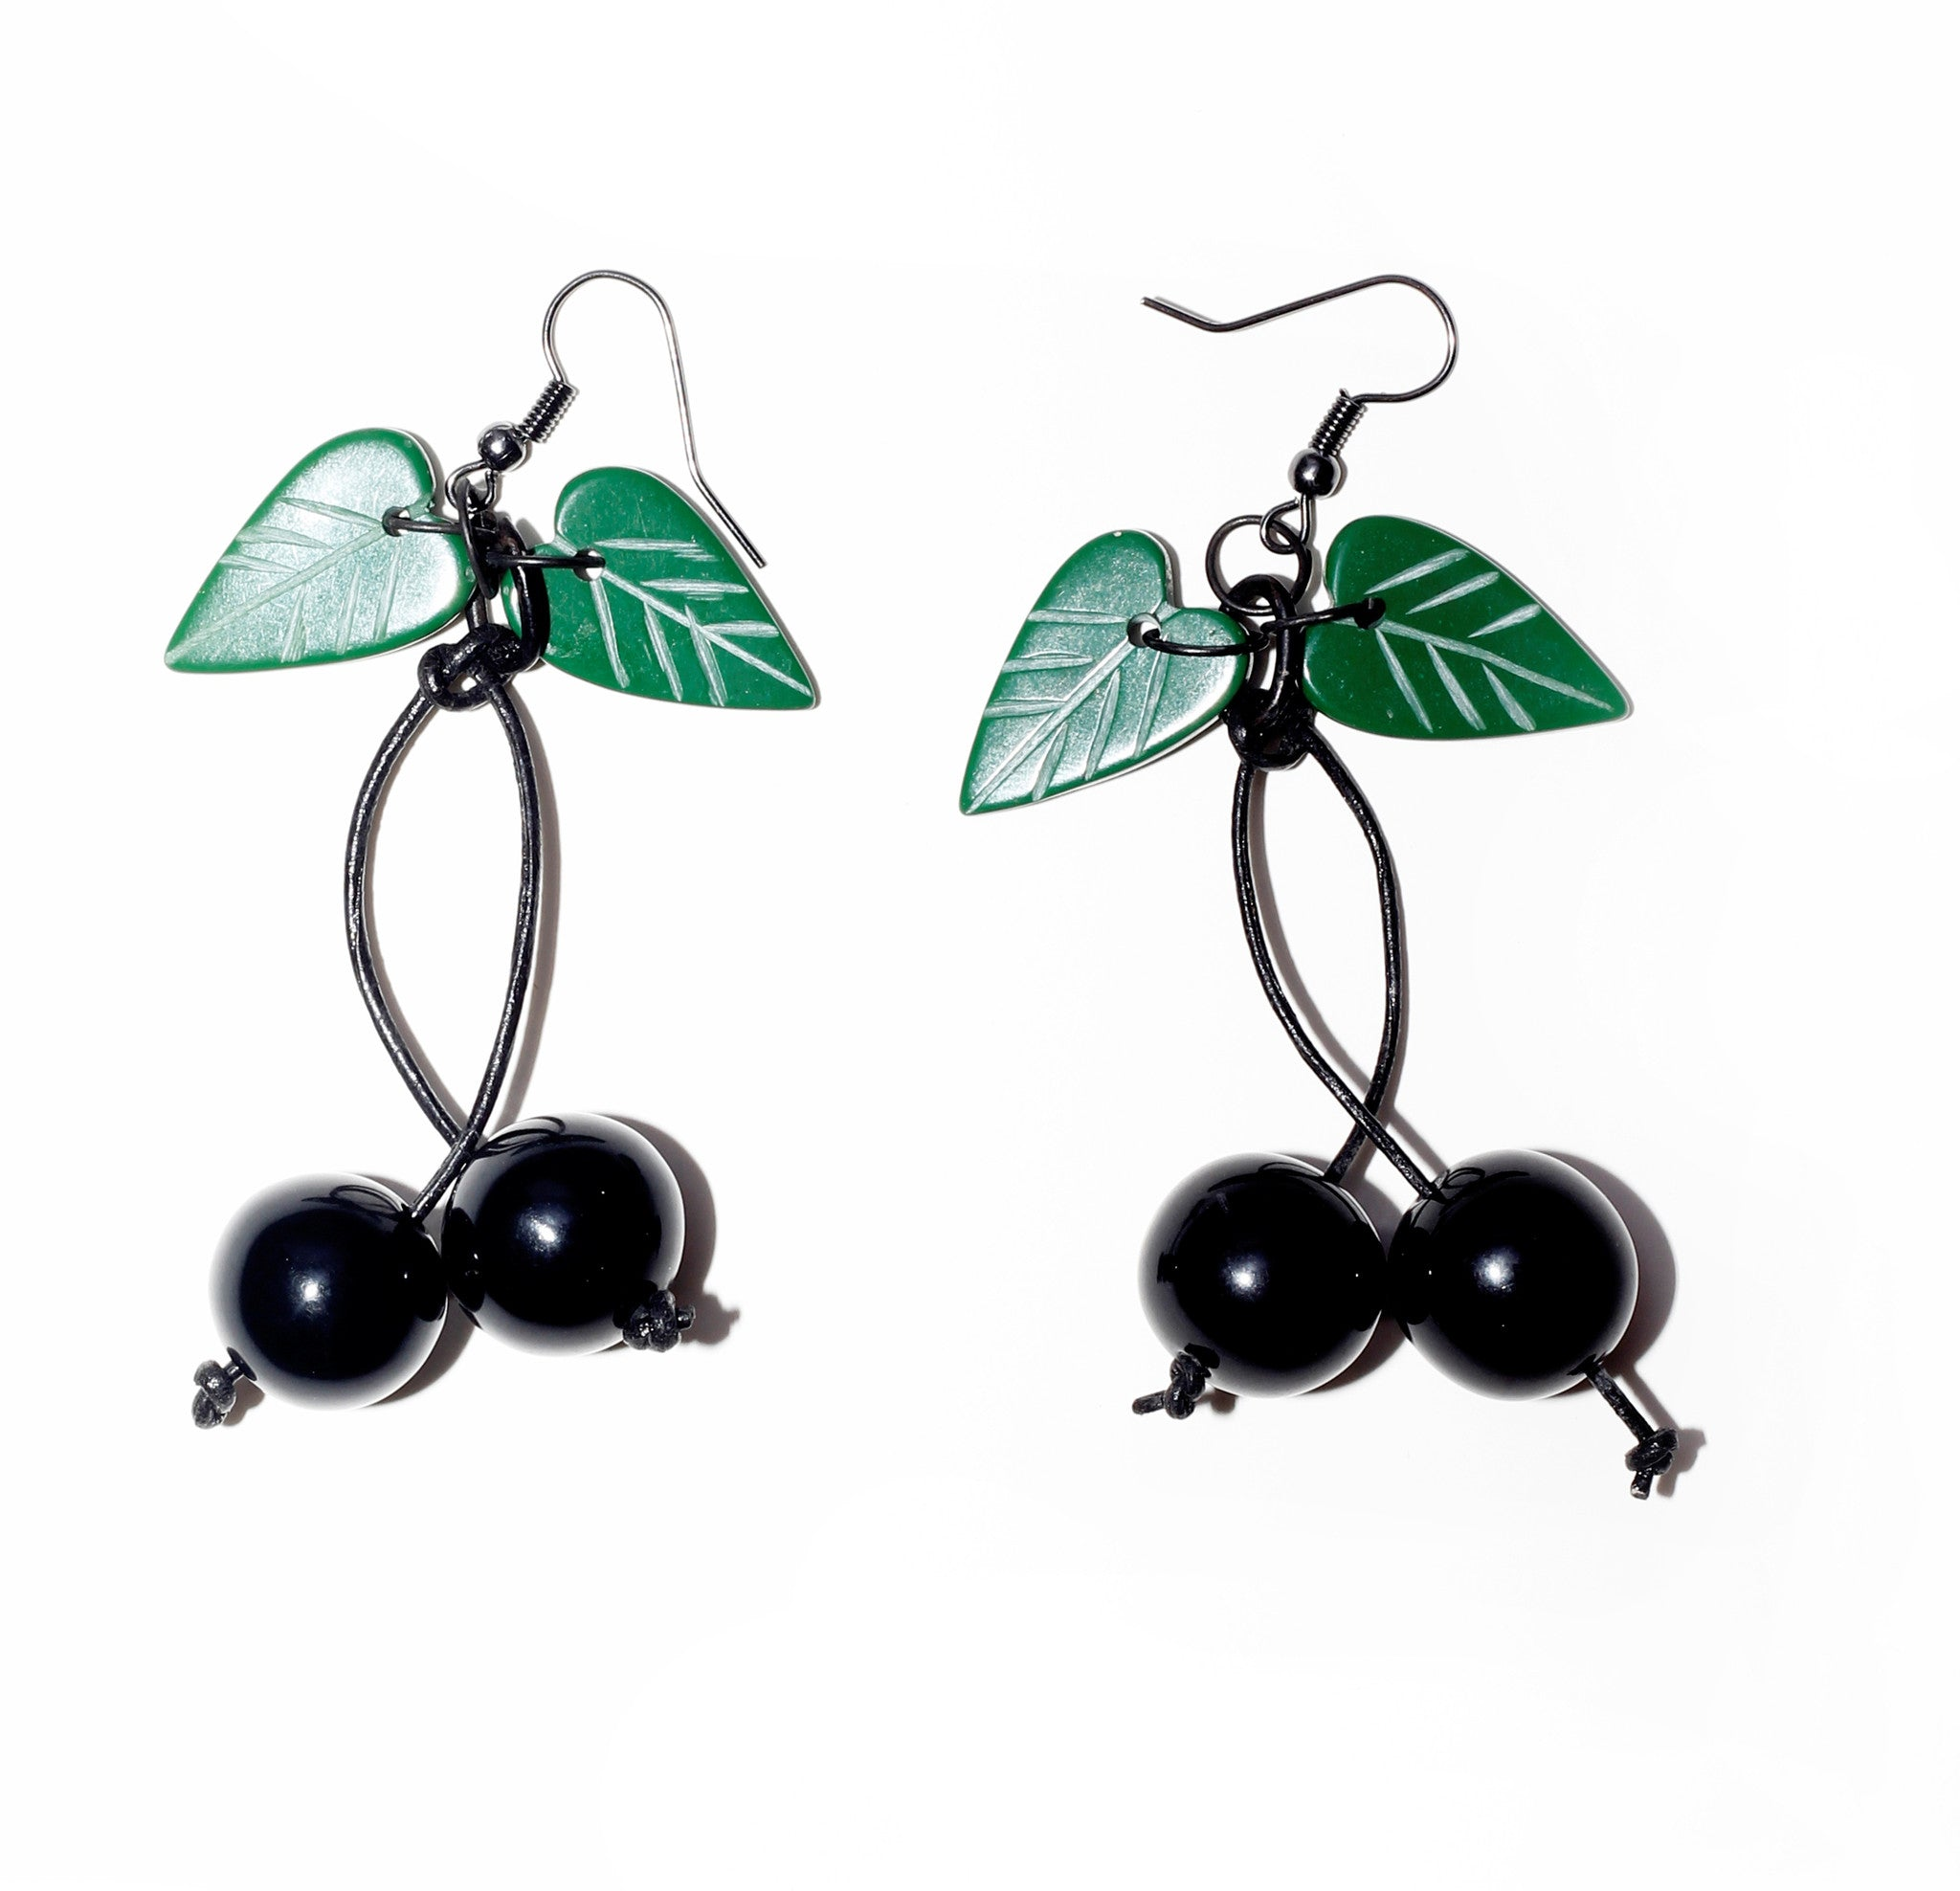 Fakelite Cherries Earrings - Black